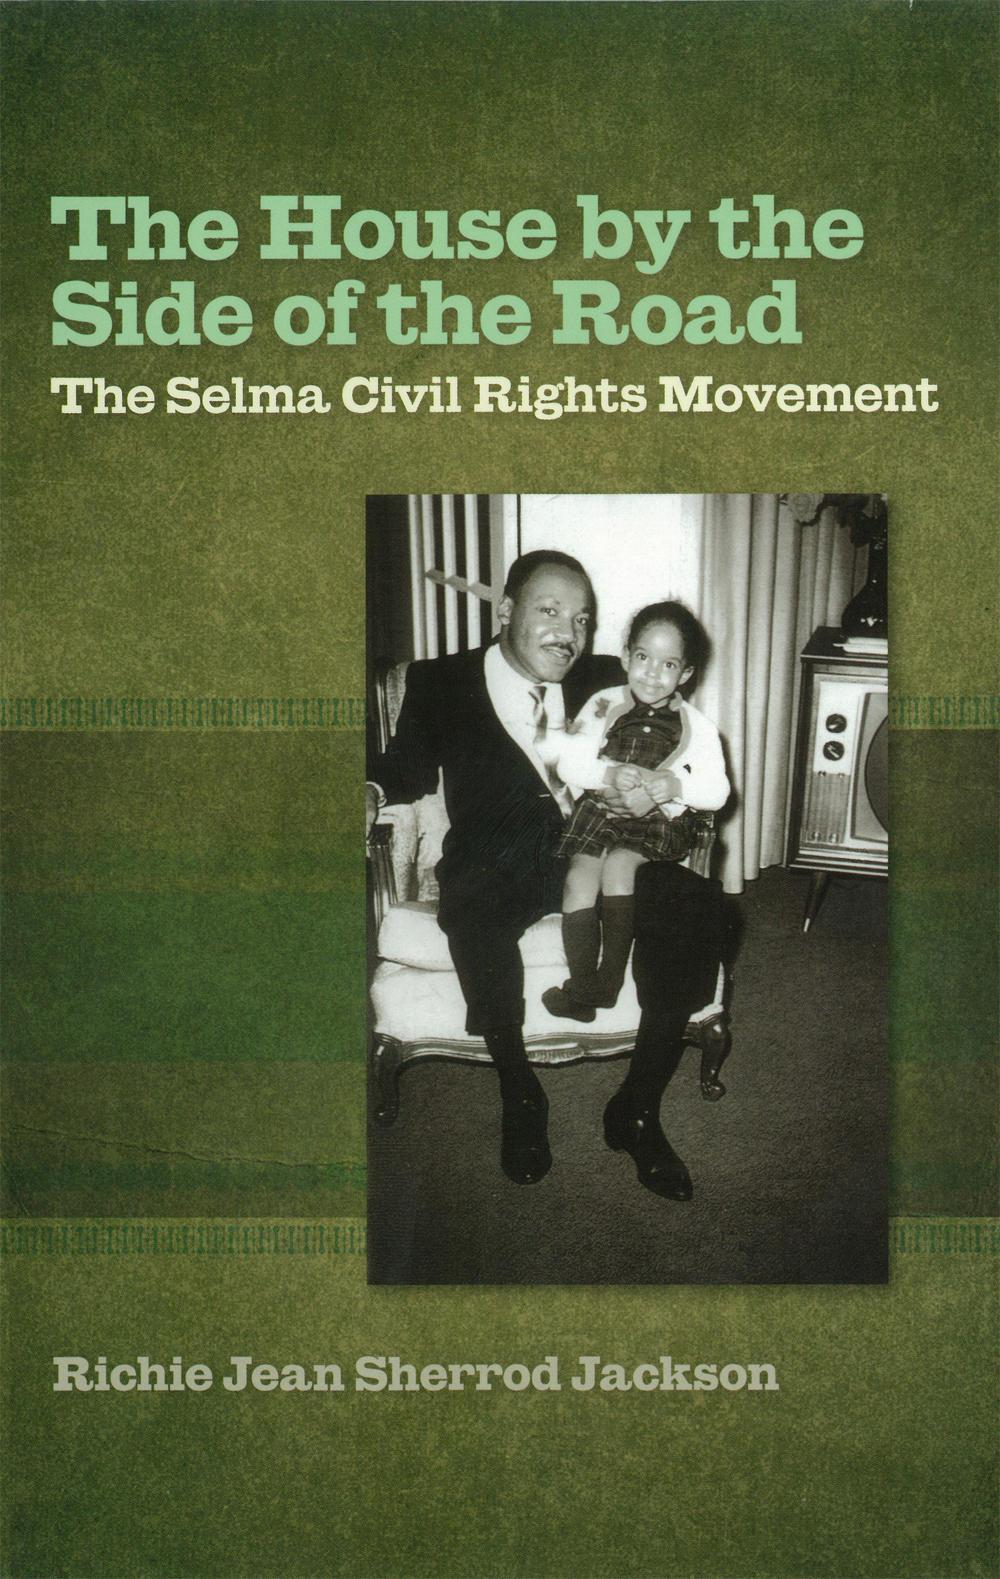 The House by the Side of the Road by Richie Jean Sherrod Jackson